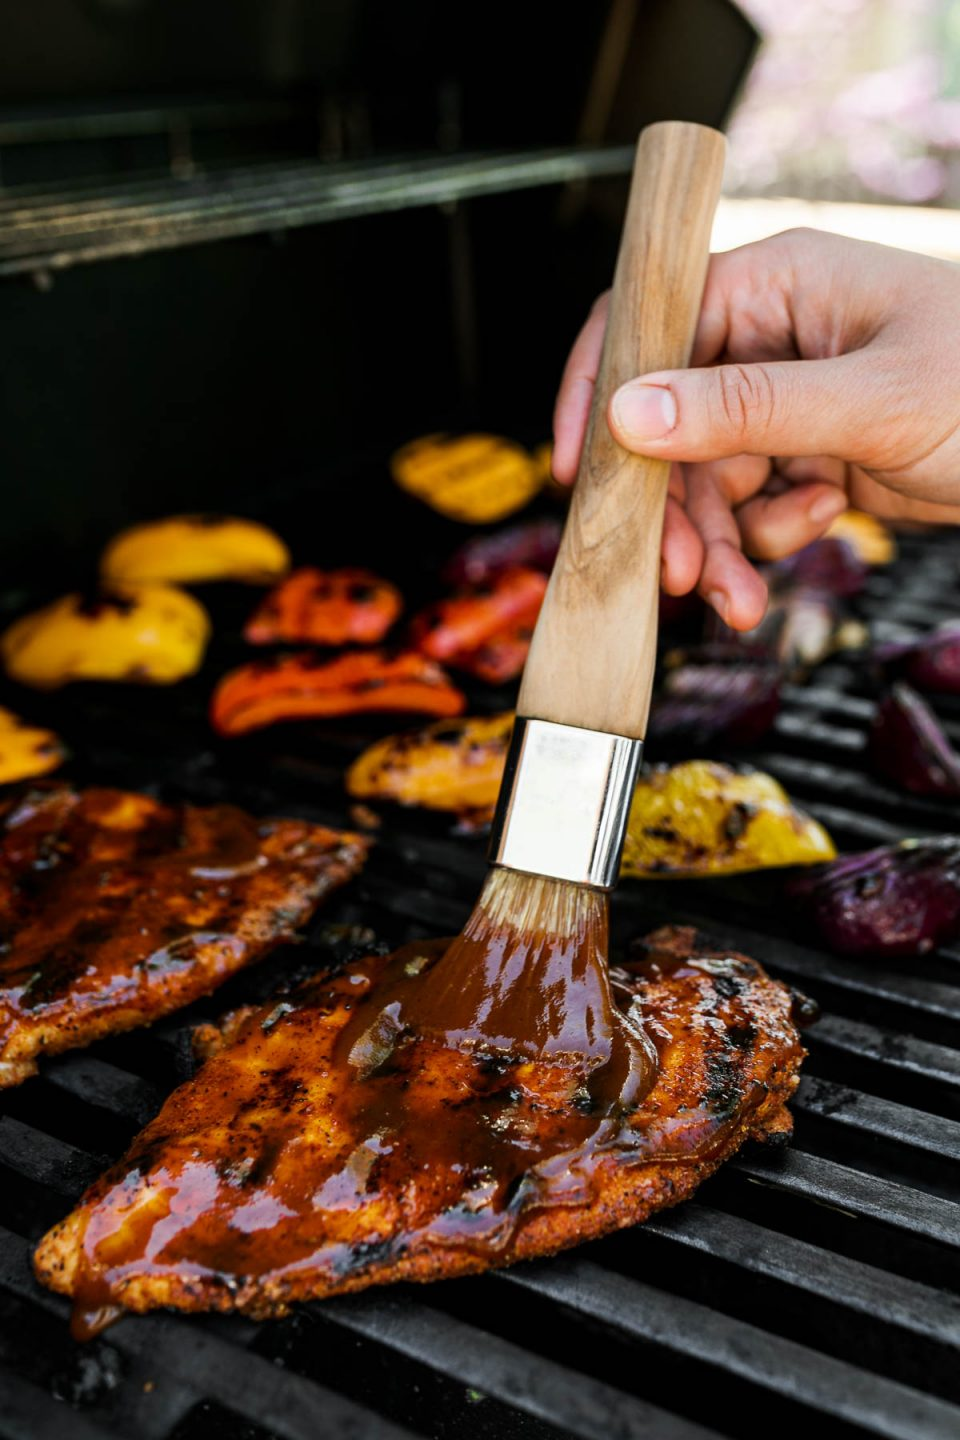 A woman's hand shown using a pastry brush to baste grilled BBQ chicken breasts with BBQ sauce on the grill.